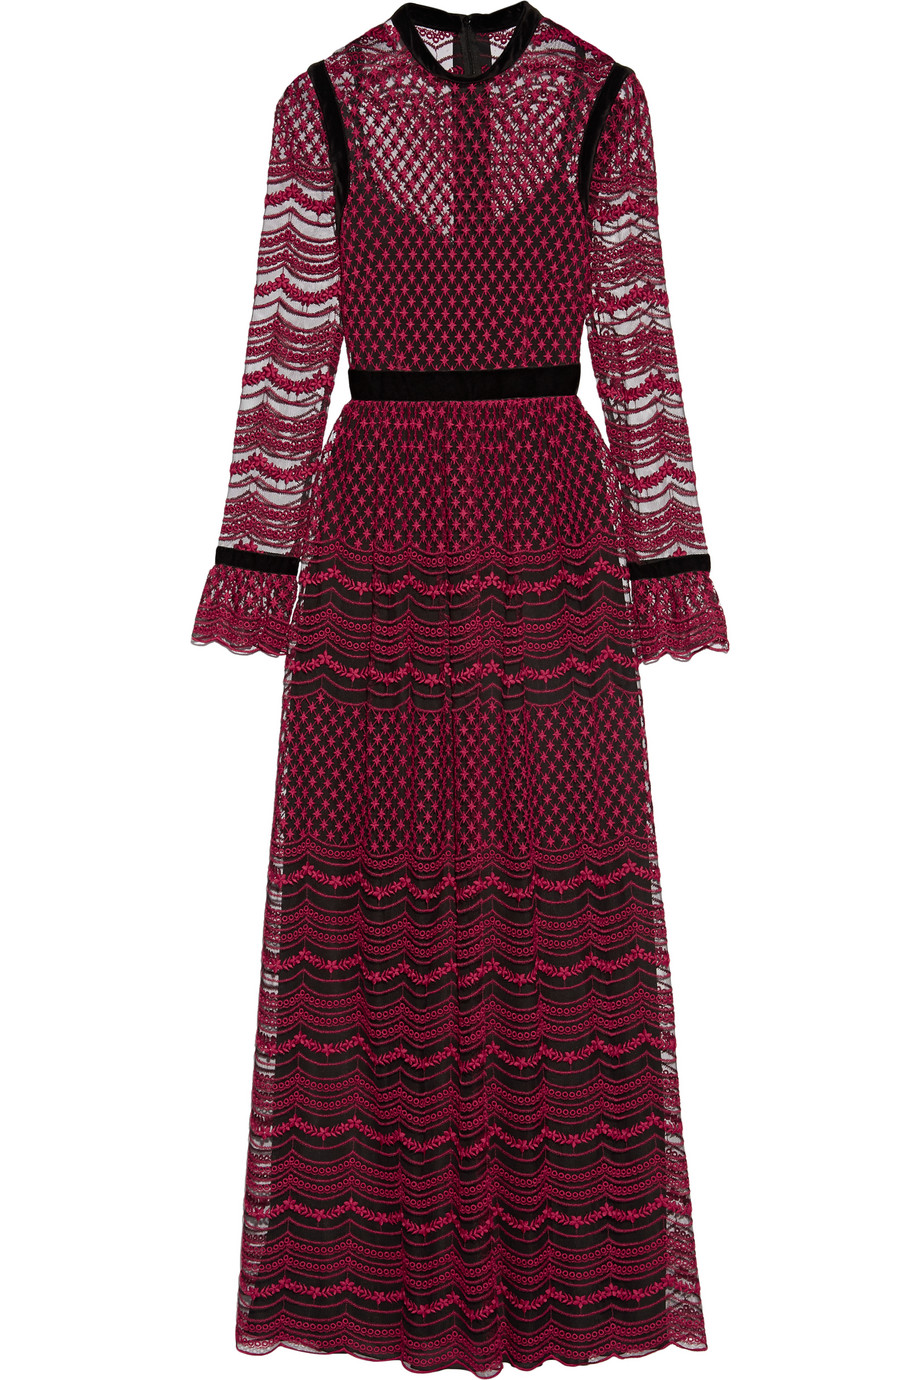 Velvet-Trimmed Embroidered Tulle Maxi Dress, Claret, Women's - Embroidered, Size: 48